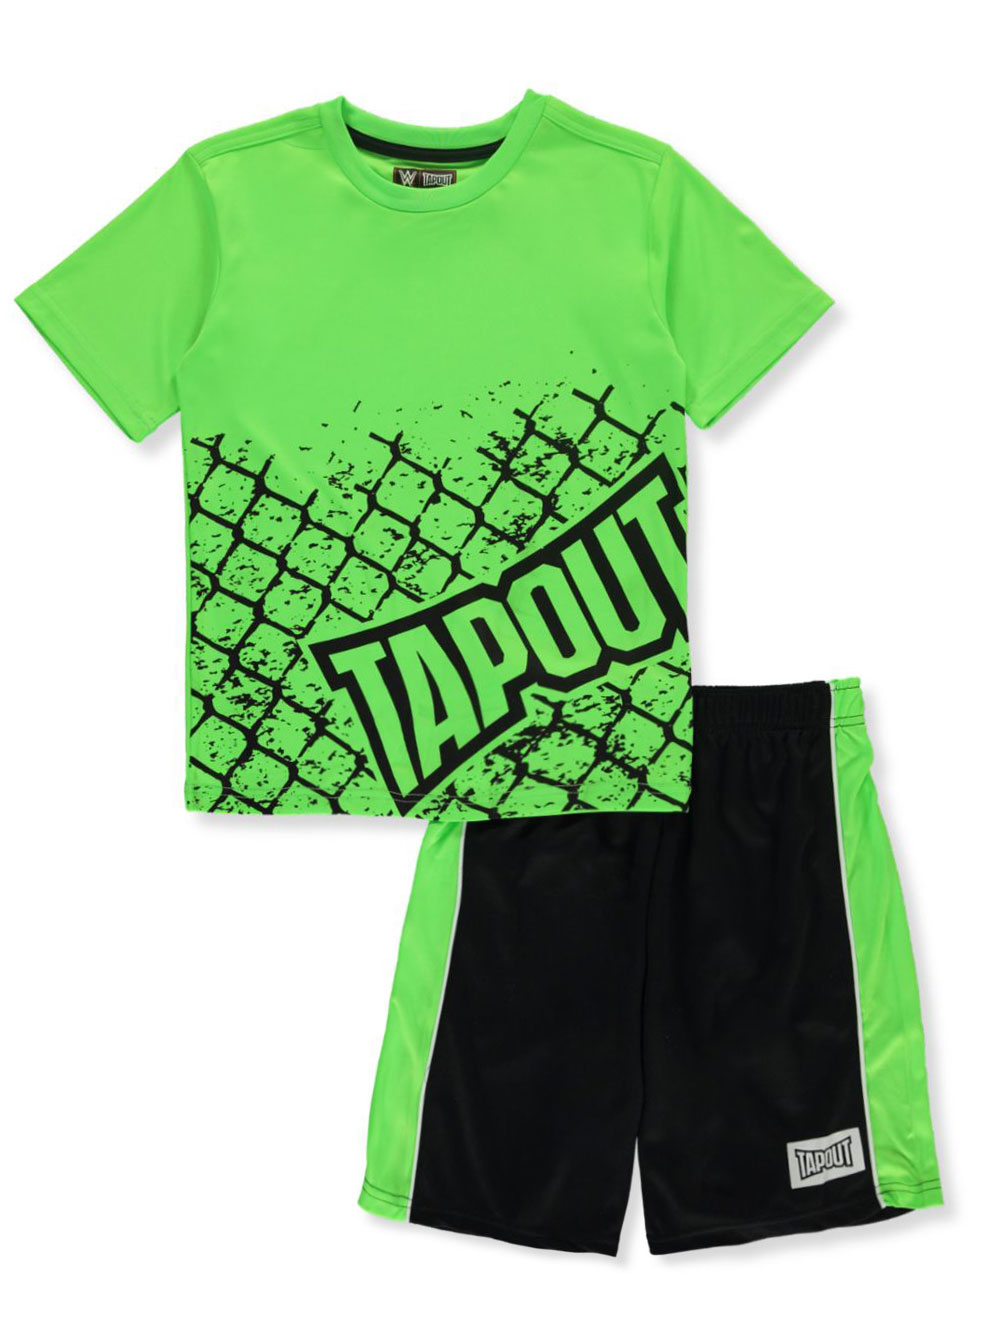 Boys' Cage 2-Piece Shorts Set Outfit